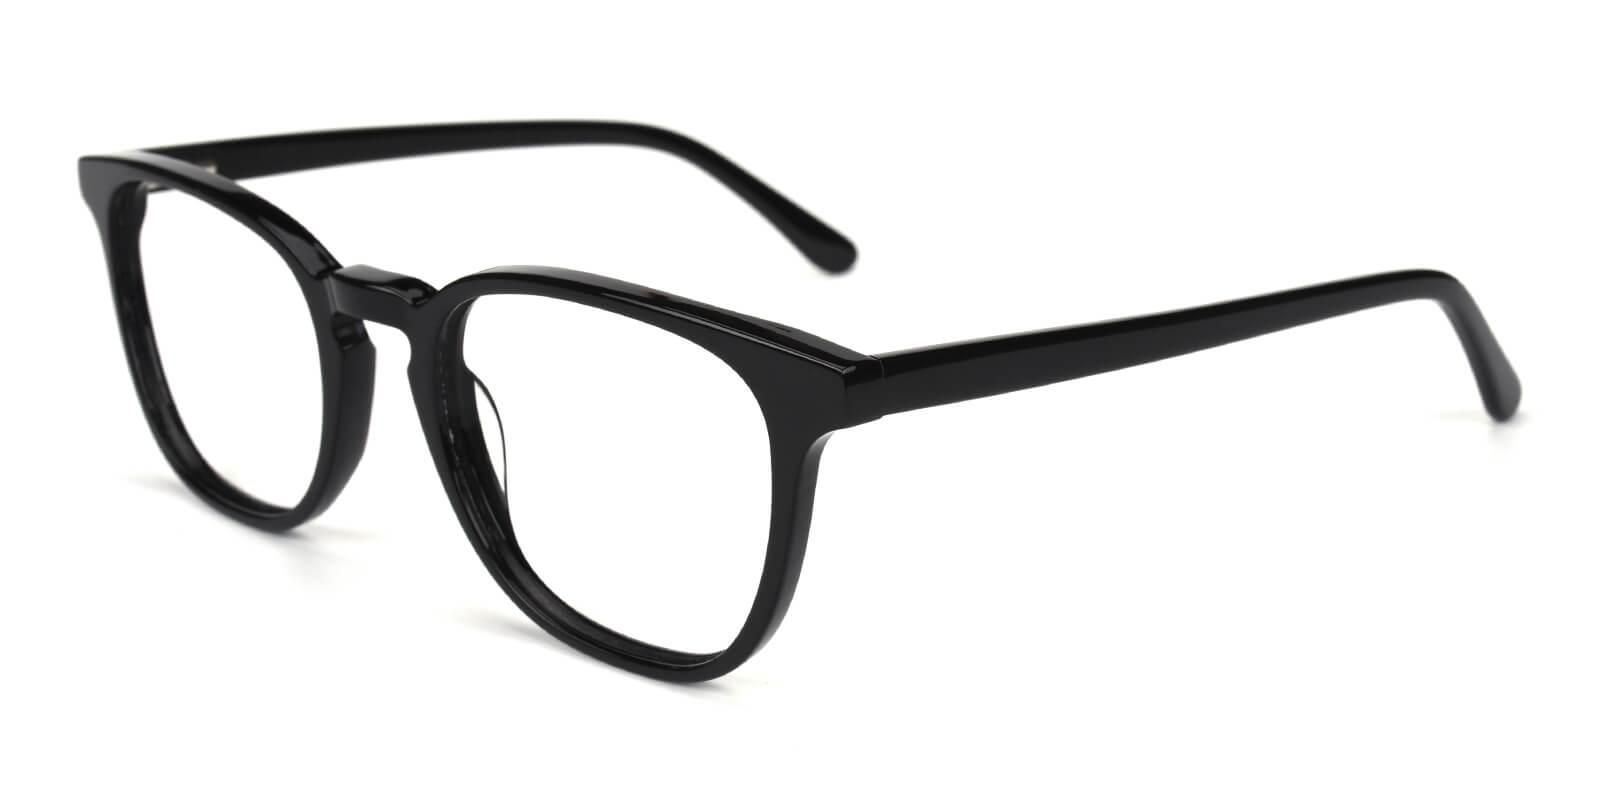 Genius-Black-Square-Acetate-Eyeglasses-additional1